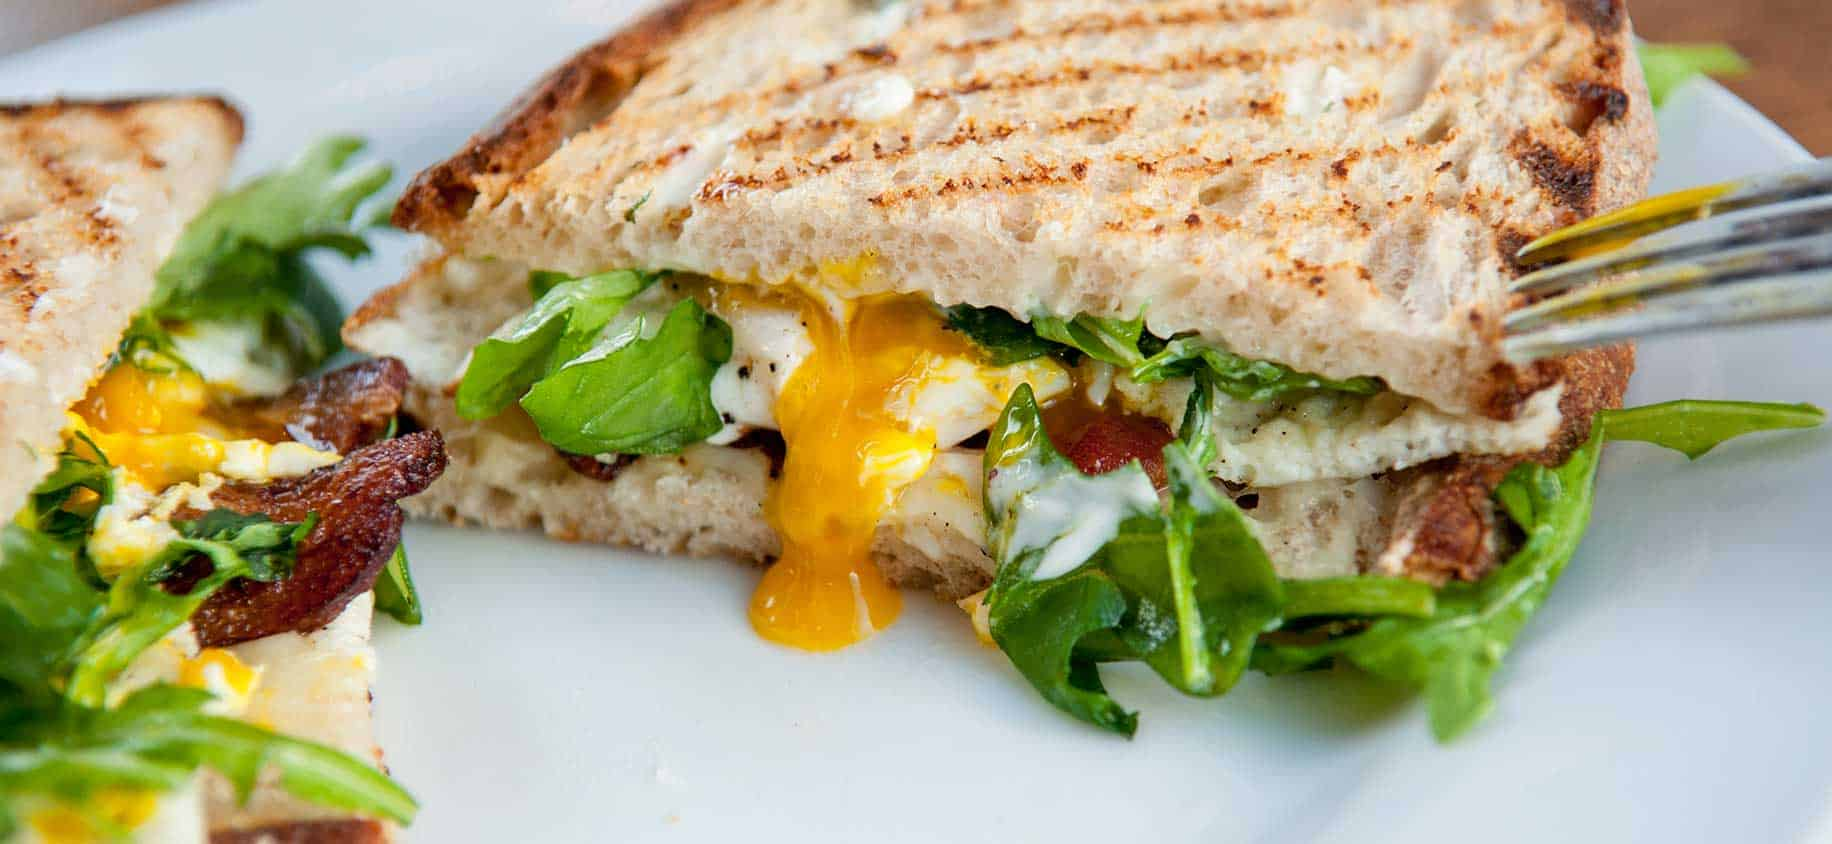 huckleberry-cafe-fried-egg-sandwich